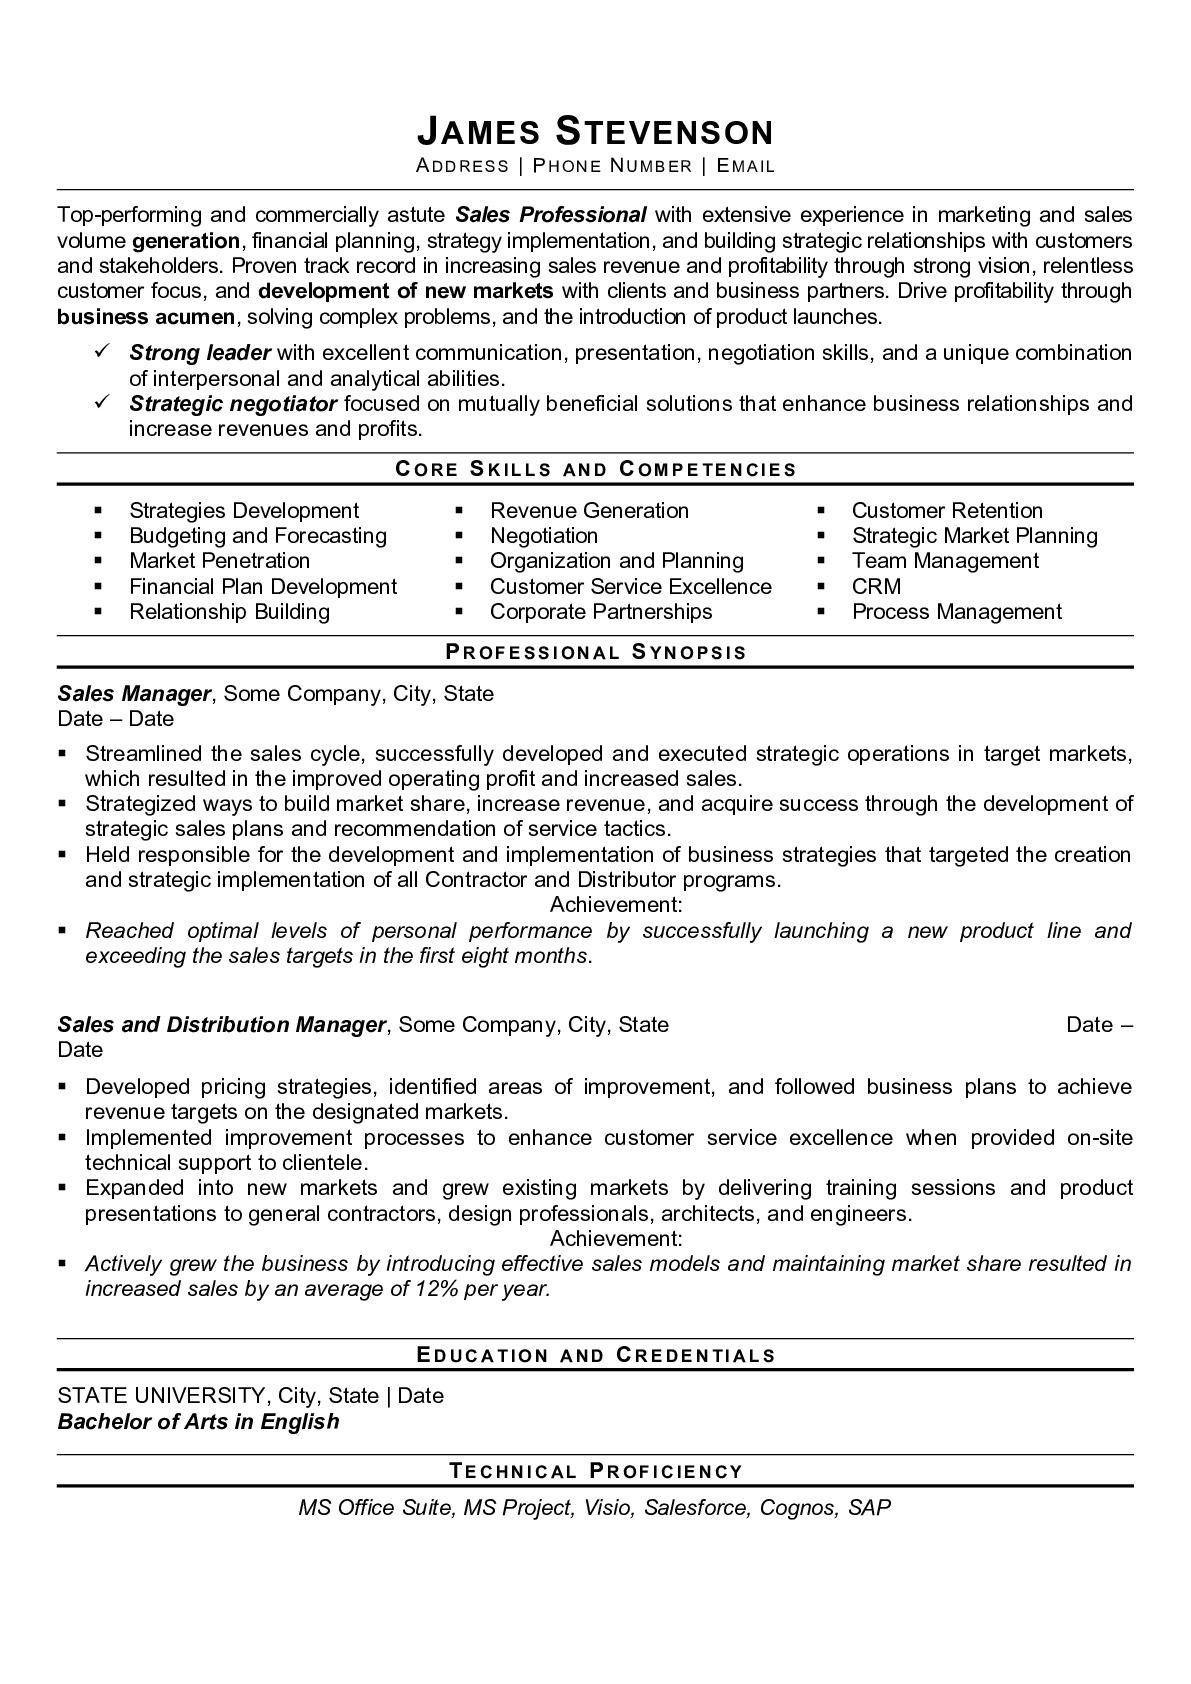 Resume Example for Sales